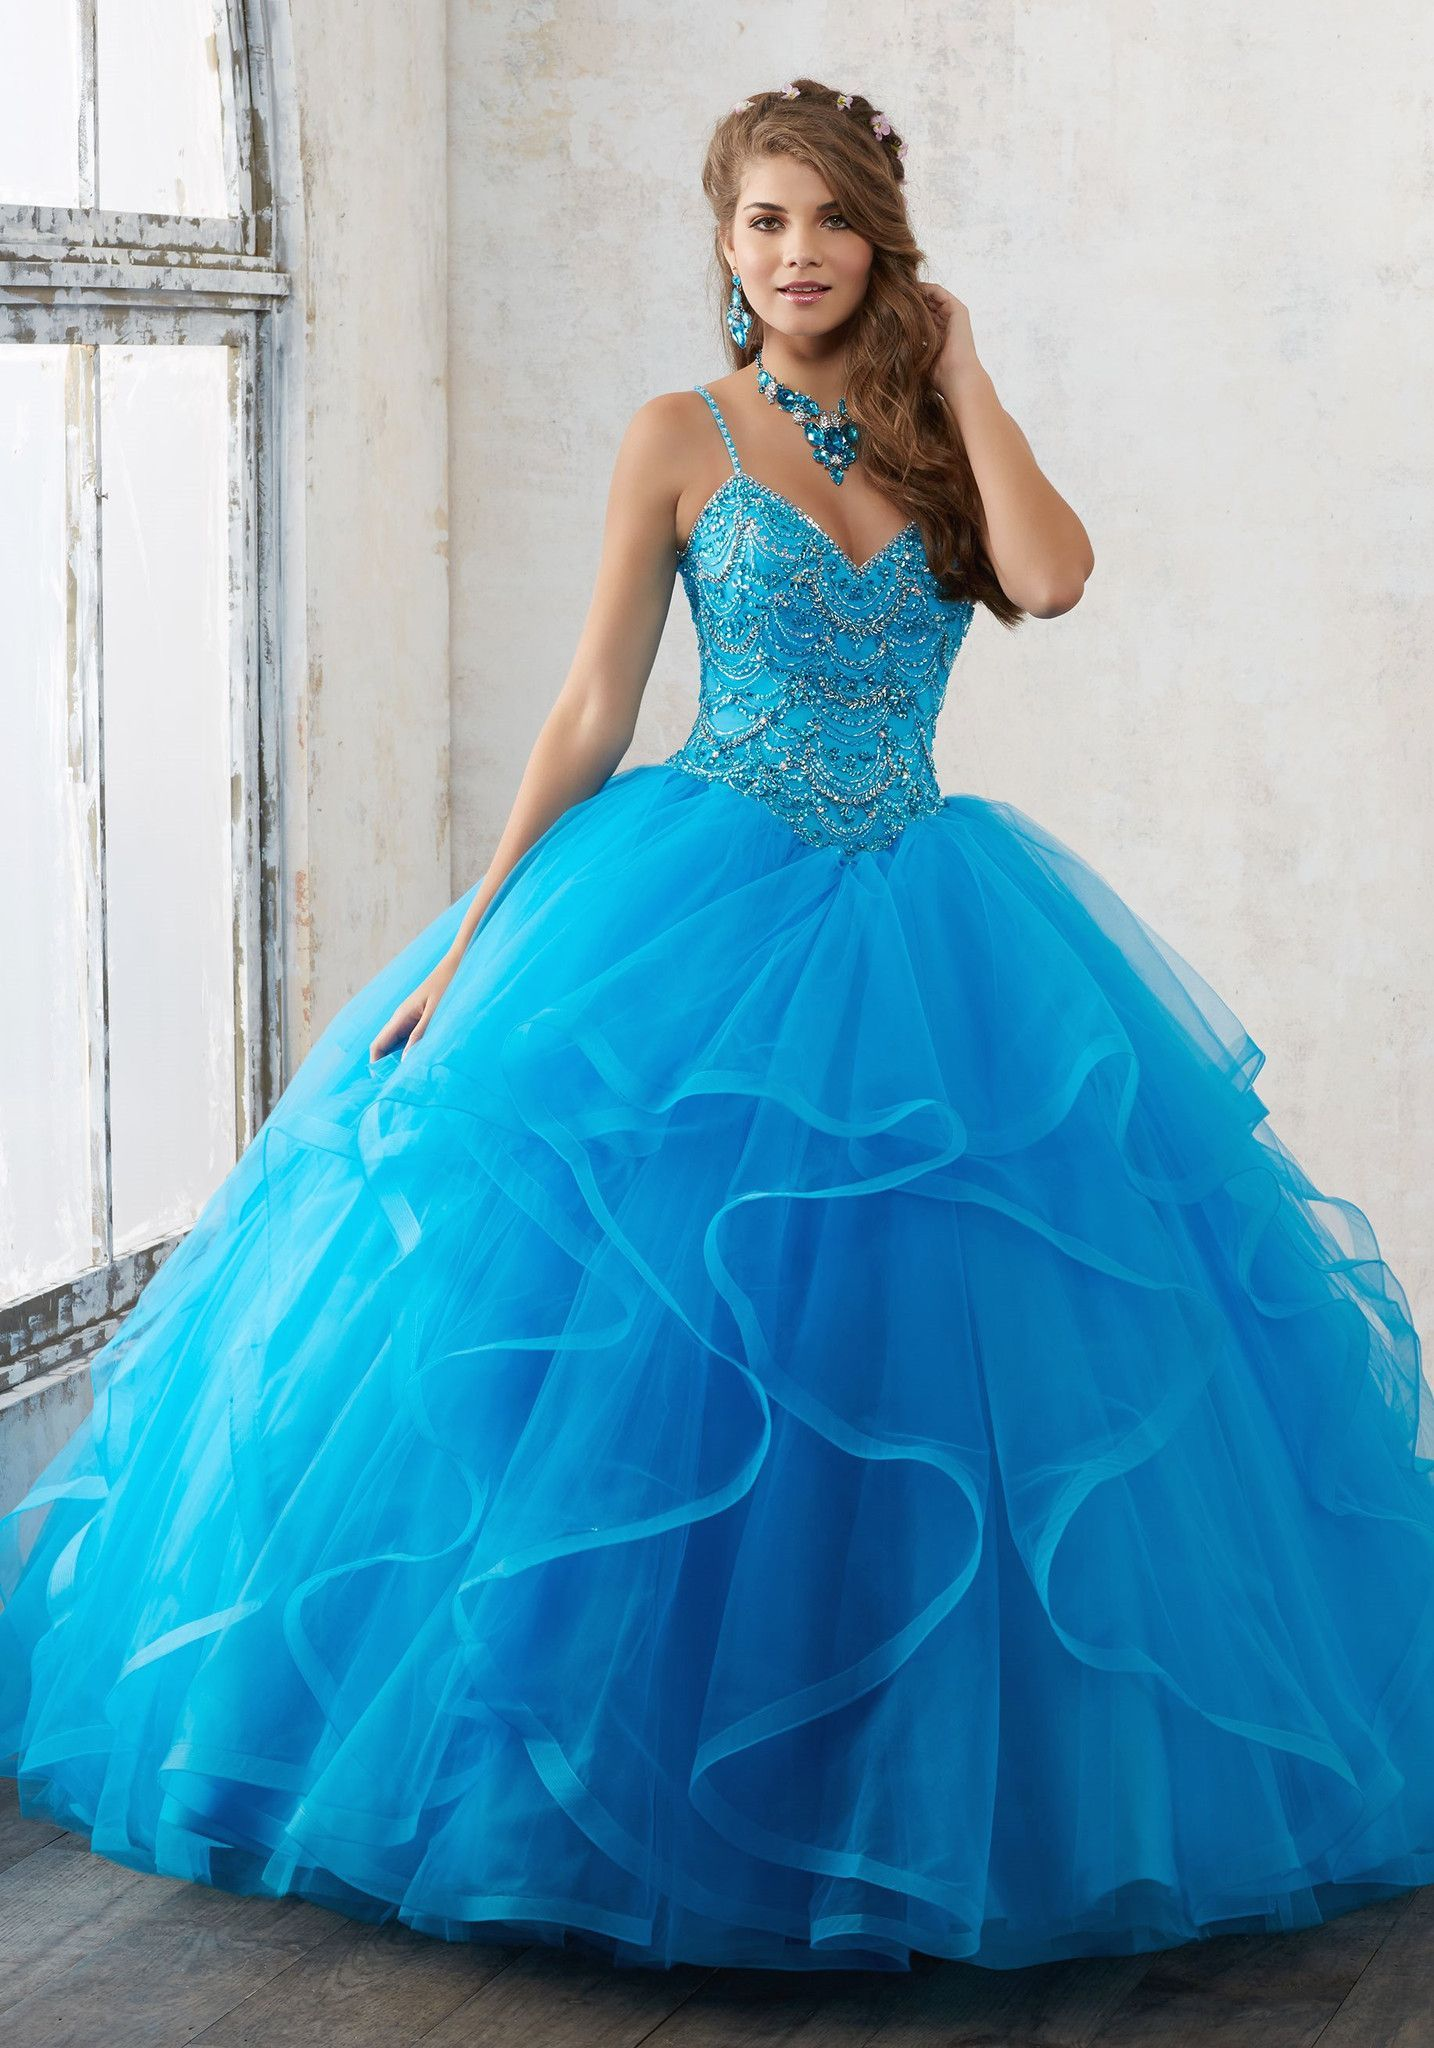 Mori Lee Valencia Quinceanera Dress 60017 | Mori lee, Valencia and Prom